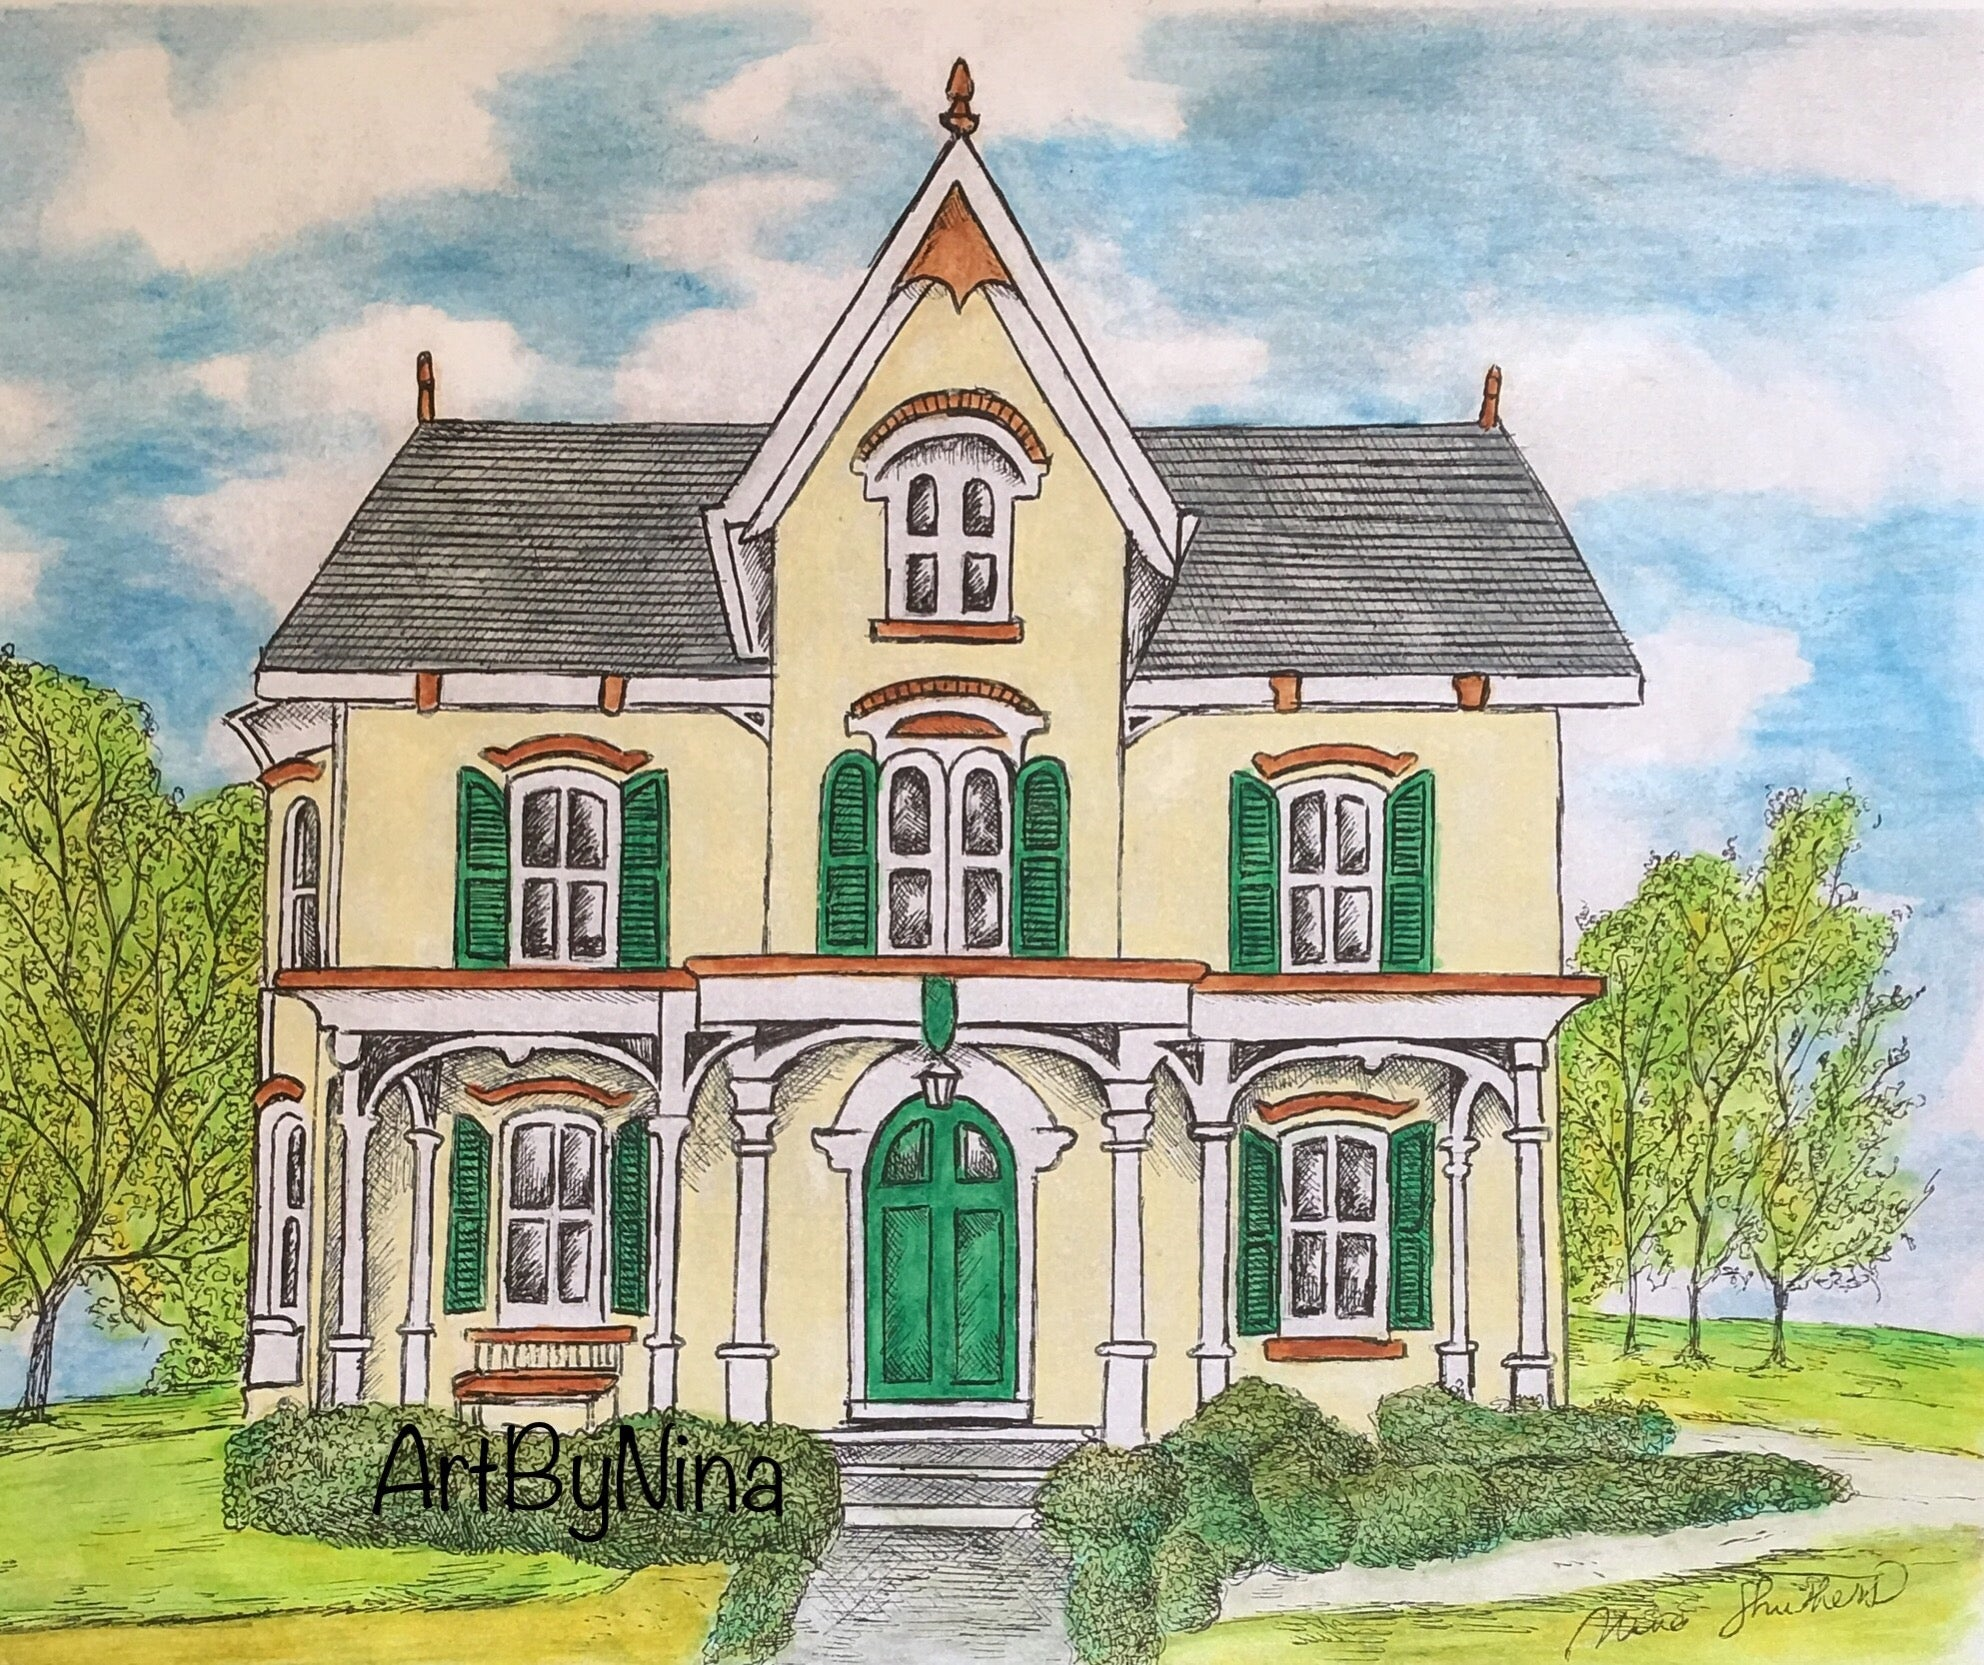 Architecture Print - Pale Yellow Cottage with Green Trim #177